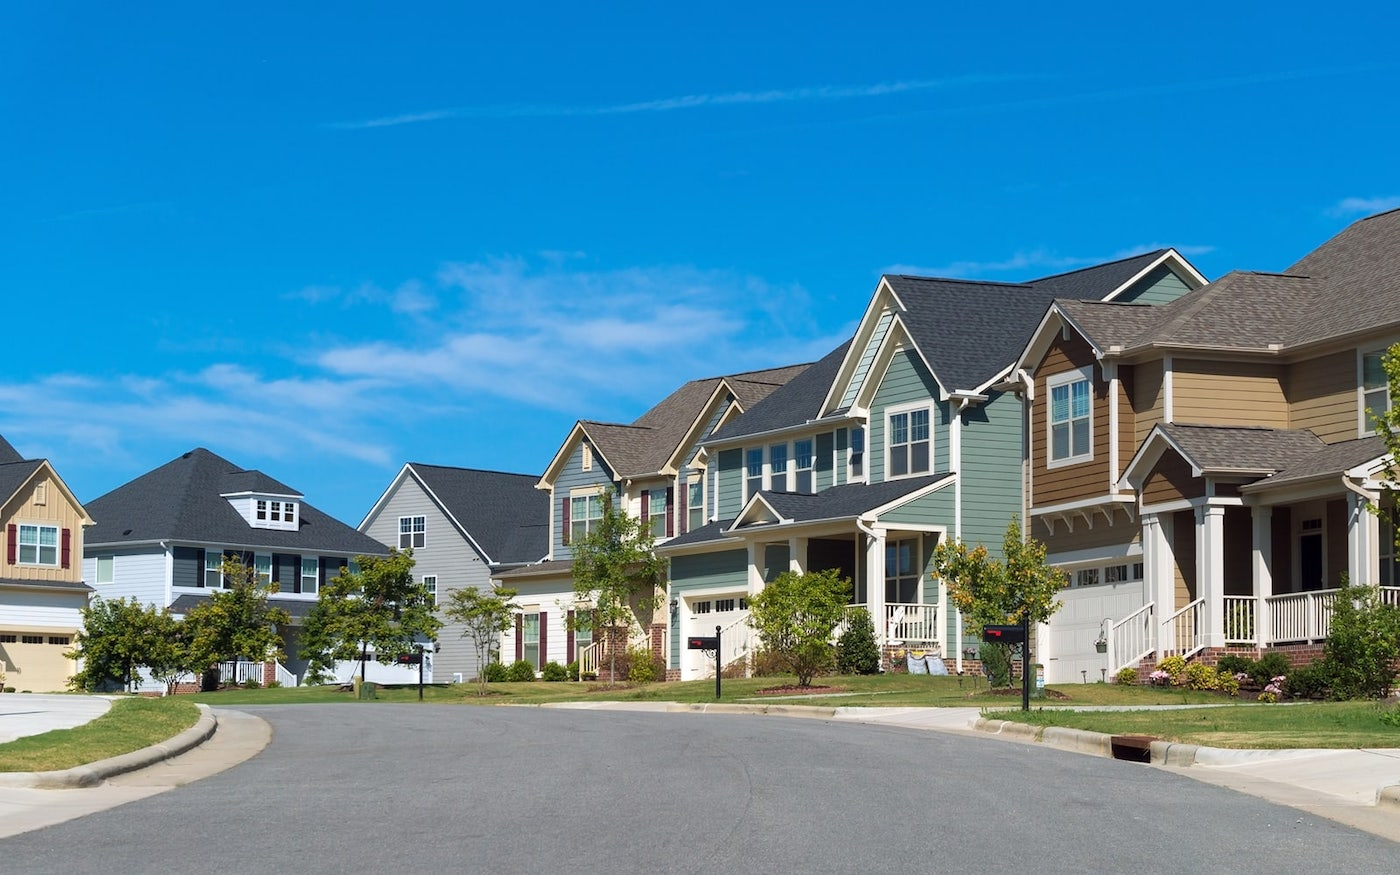 Selling a Home in Holmdel, New Jersey – 5 Tips for the Best Home Showings